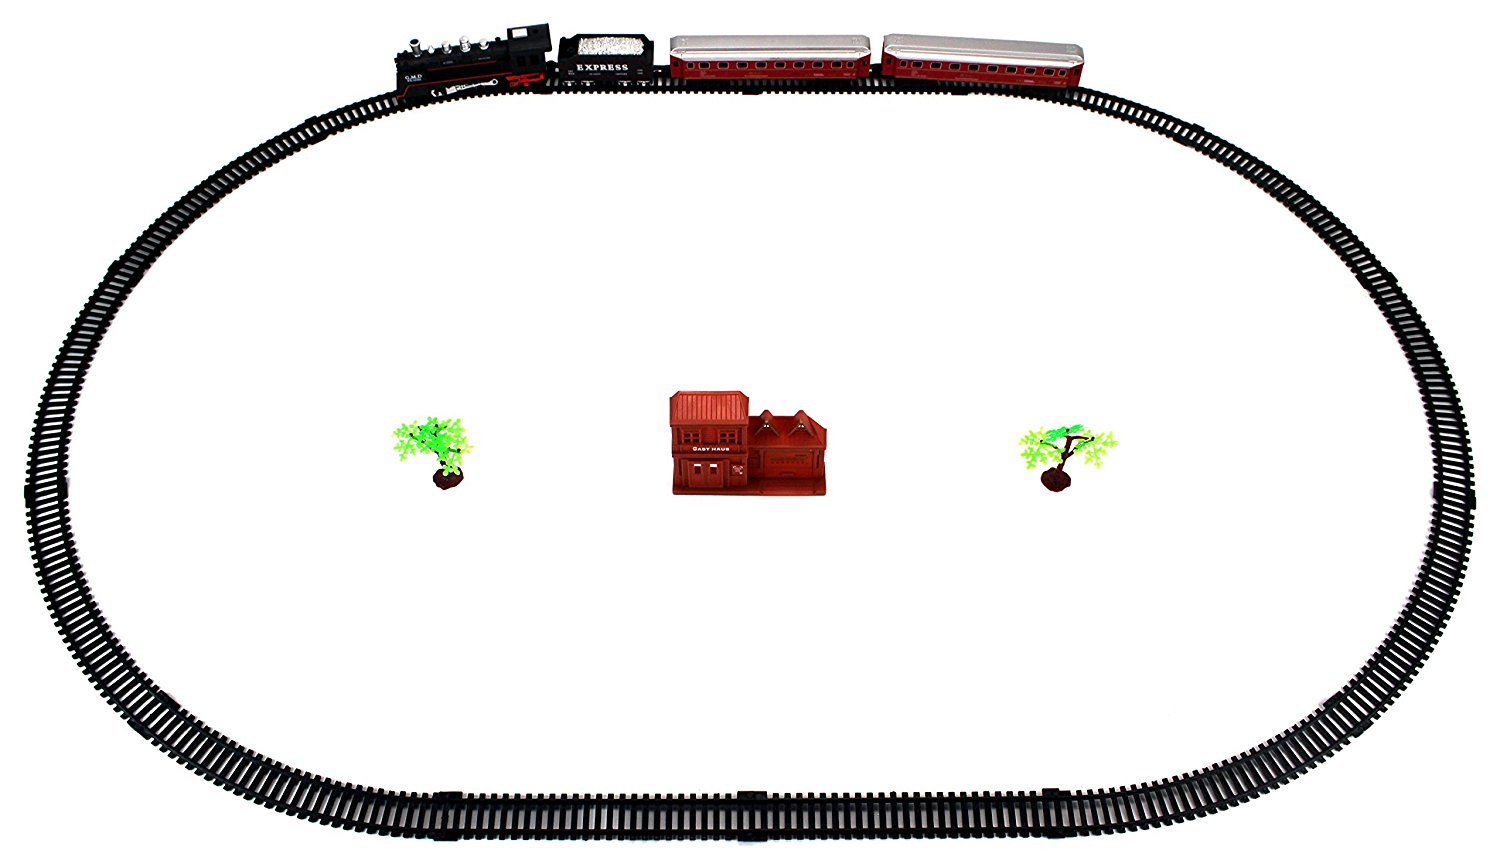 Classical Rail King 21 Piece Battery Operated Toy Train Set w/ Light, Sounds, 4 Train Cars, 10 Curved, 4 Straight Tracks, Accessories